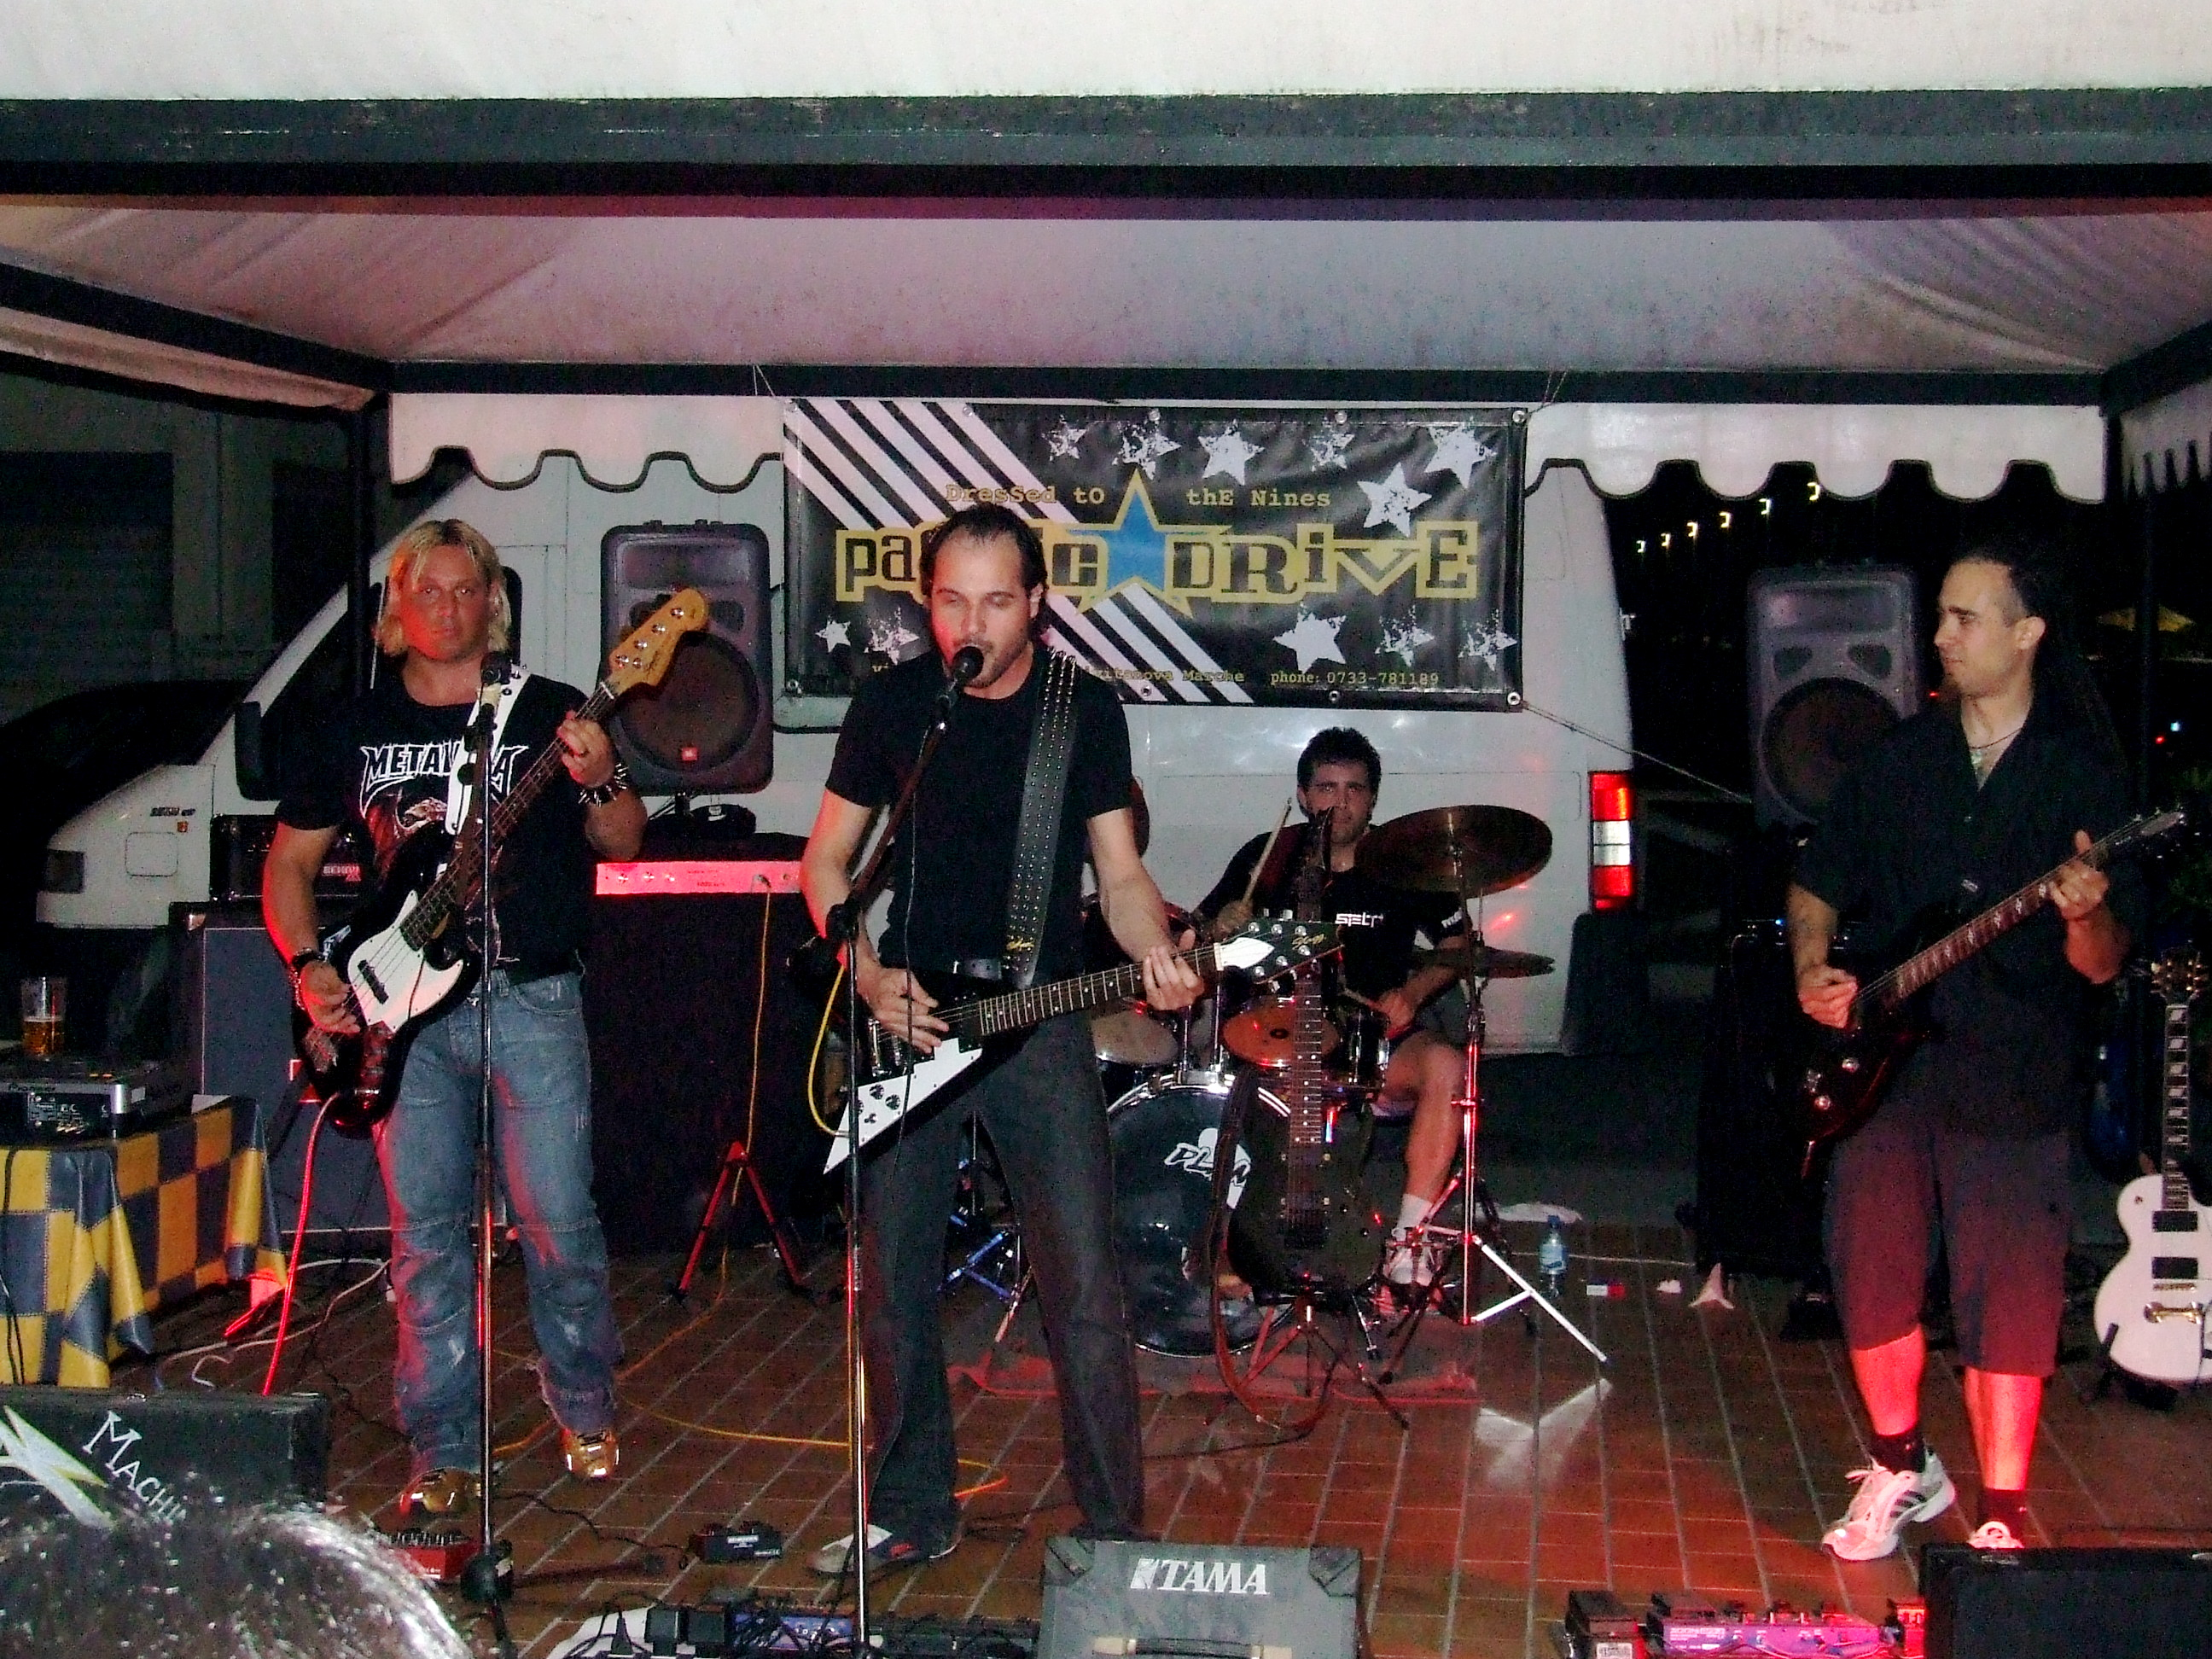 Live@Fever 142, Marche, Italy - 9.6.2007